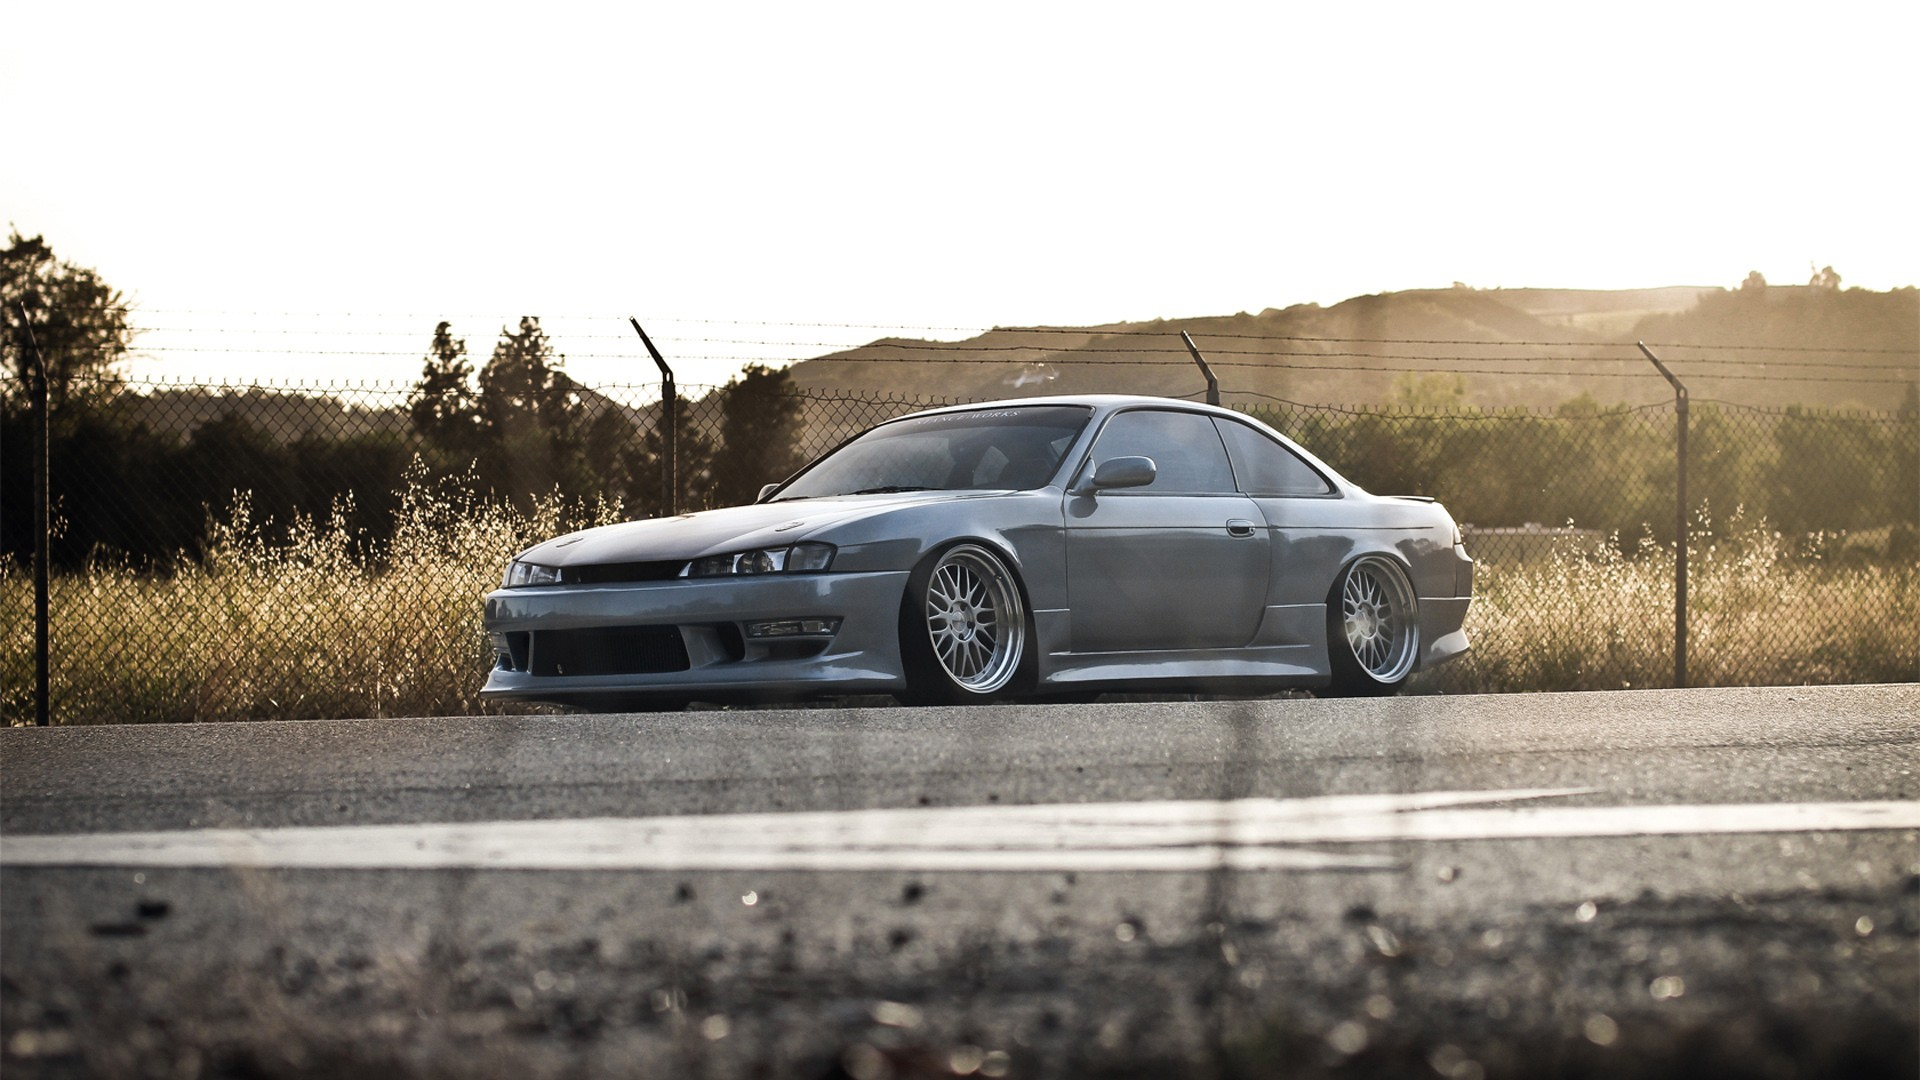 1920x1080 - Nissan Silvia S14 Wallpapers 16